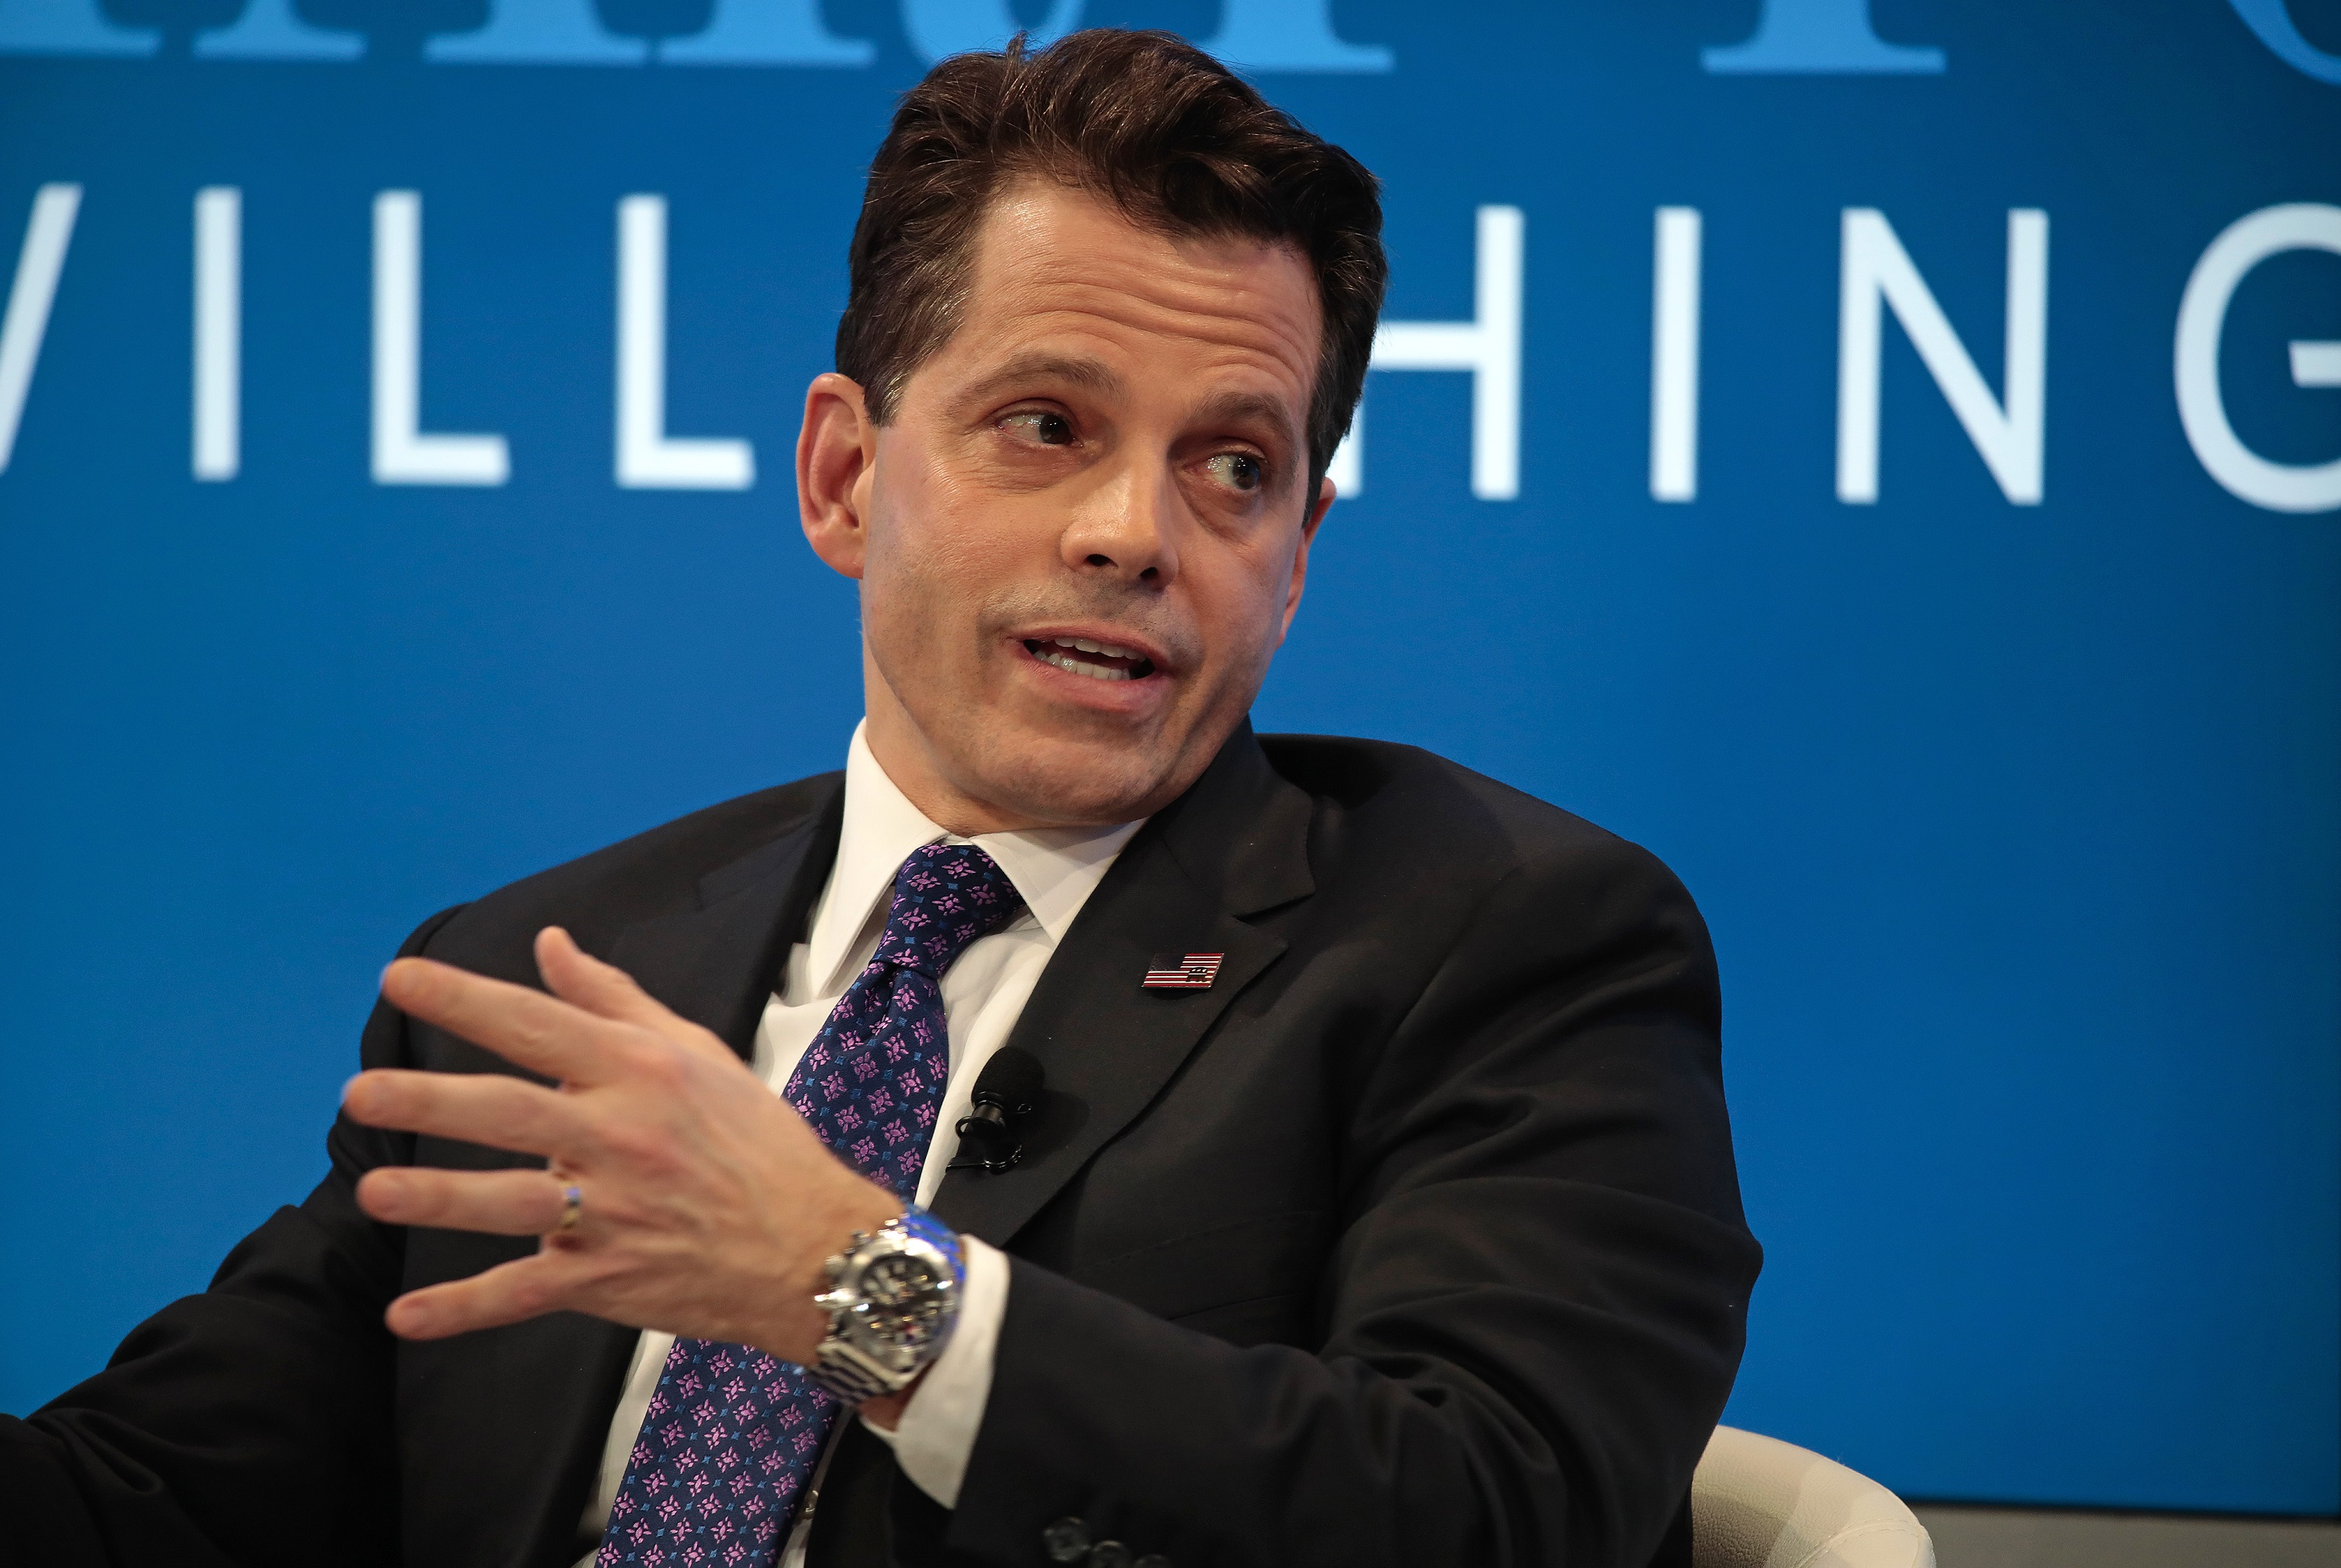 Anthony Scaramucci, SkyBridge Capital Founder and aide to U.S. President-elect Donald Trump, gestures as he speaks during a panel session at the World Economic Forum (WEF) in Davos, Switzerland, on Tuesday, Jan. 17, 2017. World leaders, influential executives, bankers and policy makers attend the 47th annual meeting of the World Economic Forum in Davos from Jan. 17 - 20. Photographer: Jason Alden/Bloomberg